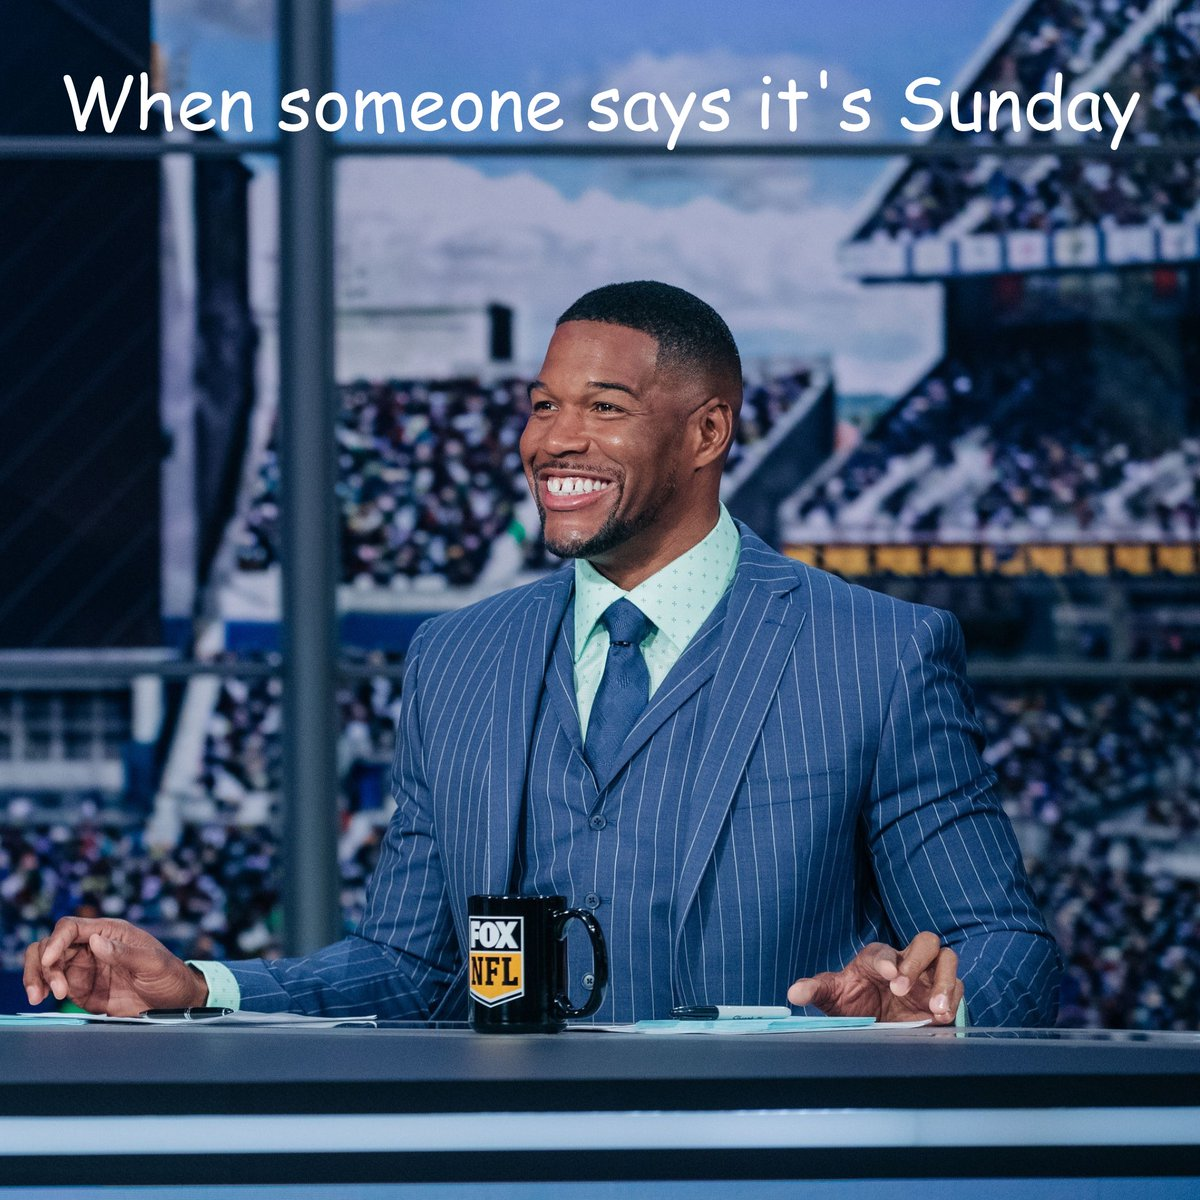 Sunday may be a workday for me, but is it work when you LOVE what you do? @NFLonFOX #Football #Sunday